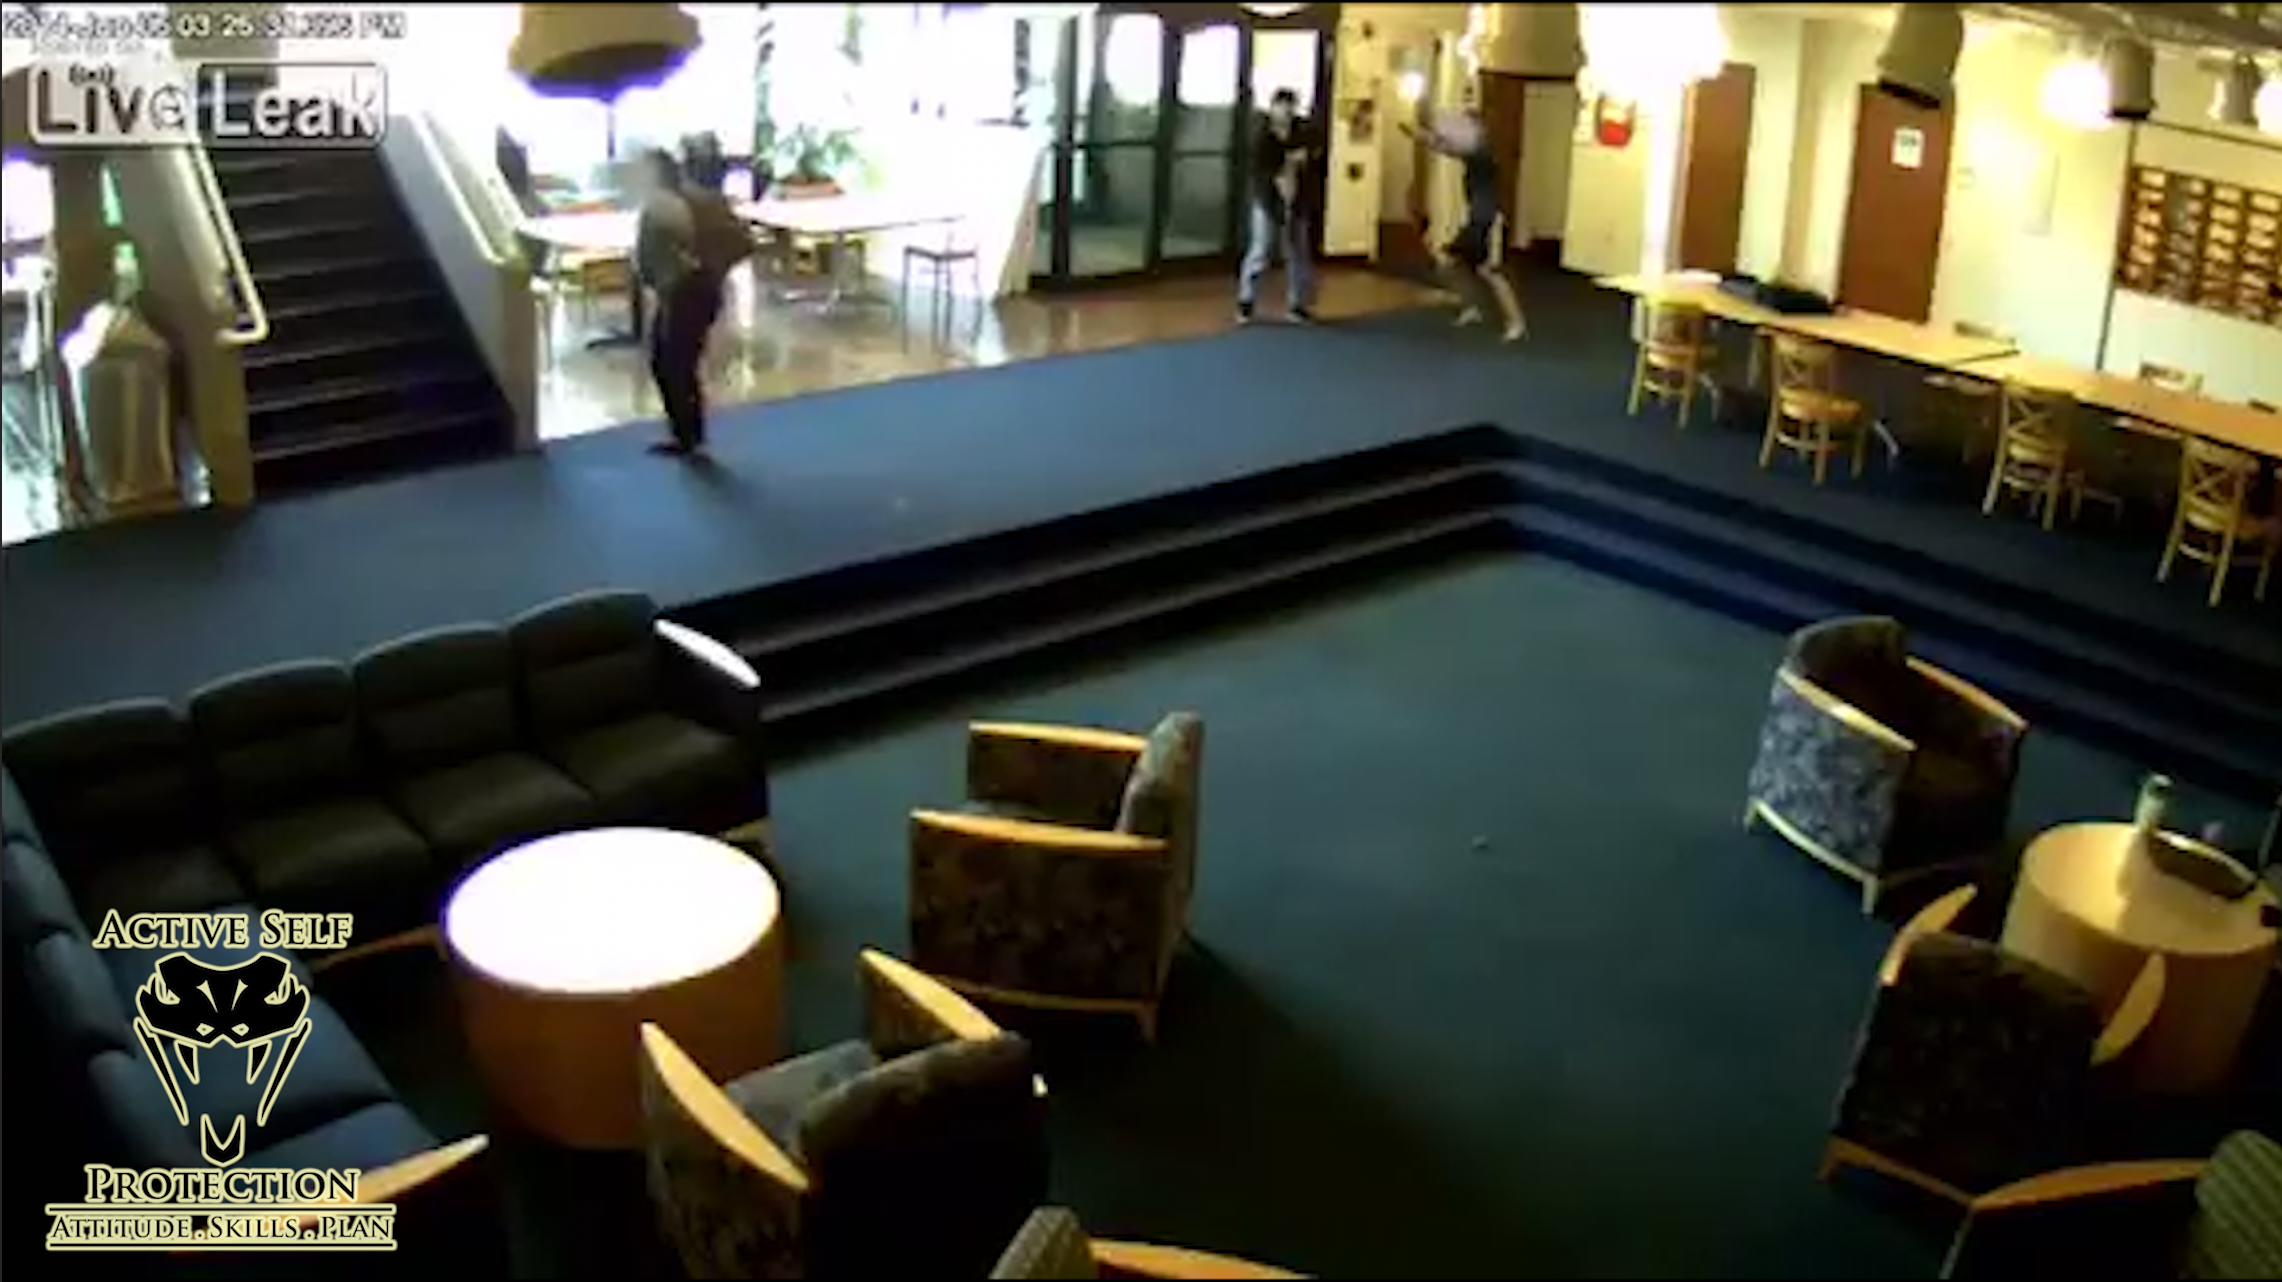 Brave Student Stops Active Killer on Campus